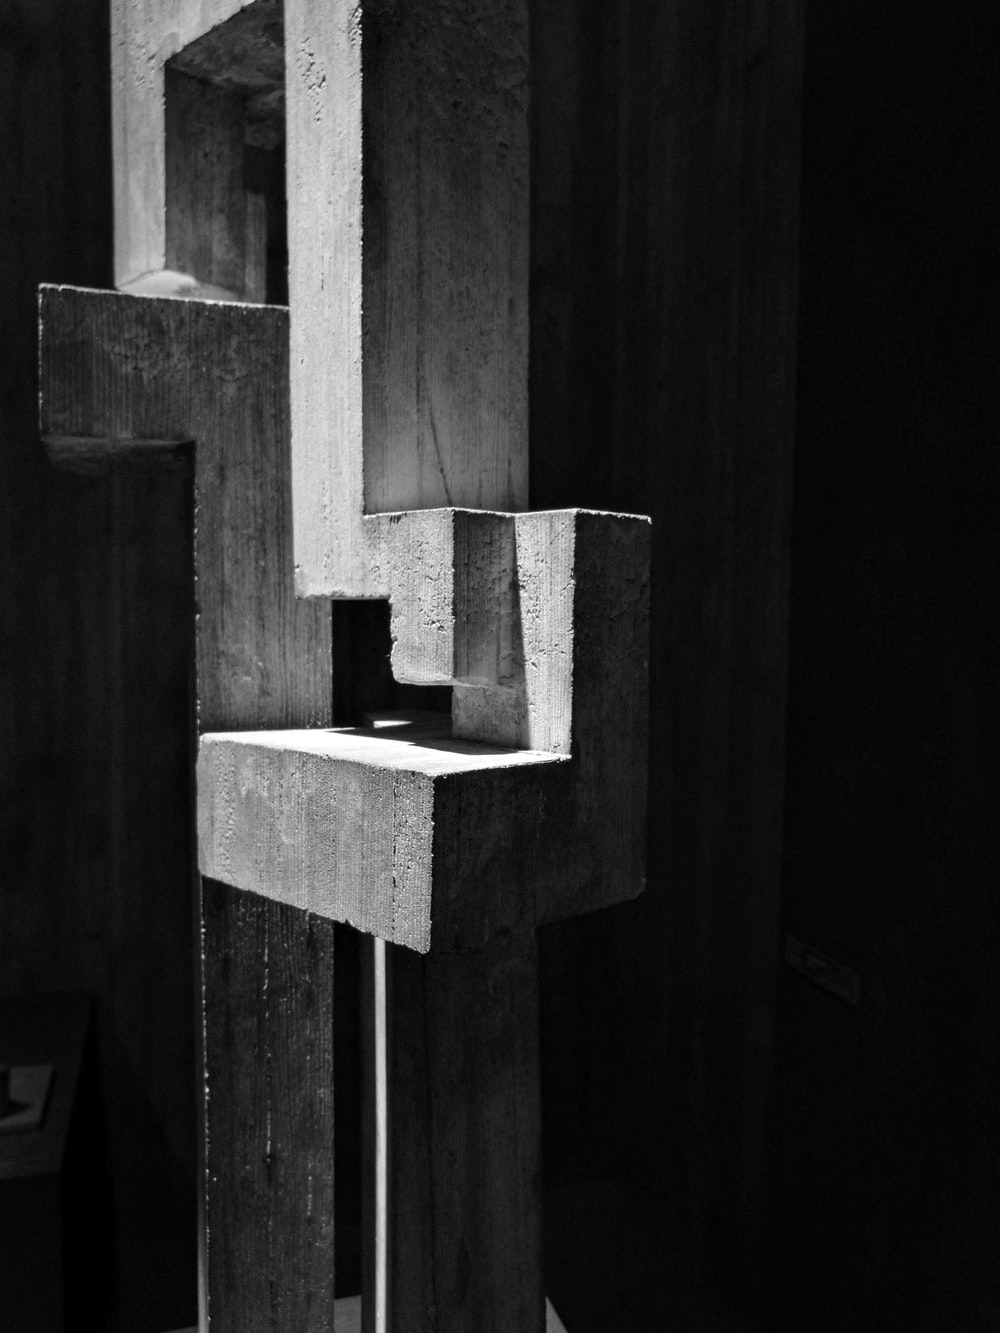 grayscale photography of concrete blocks